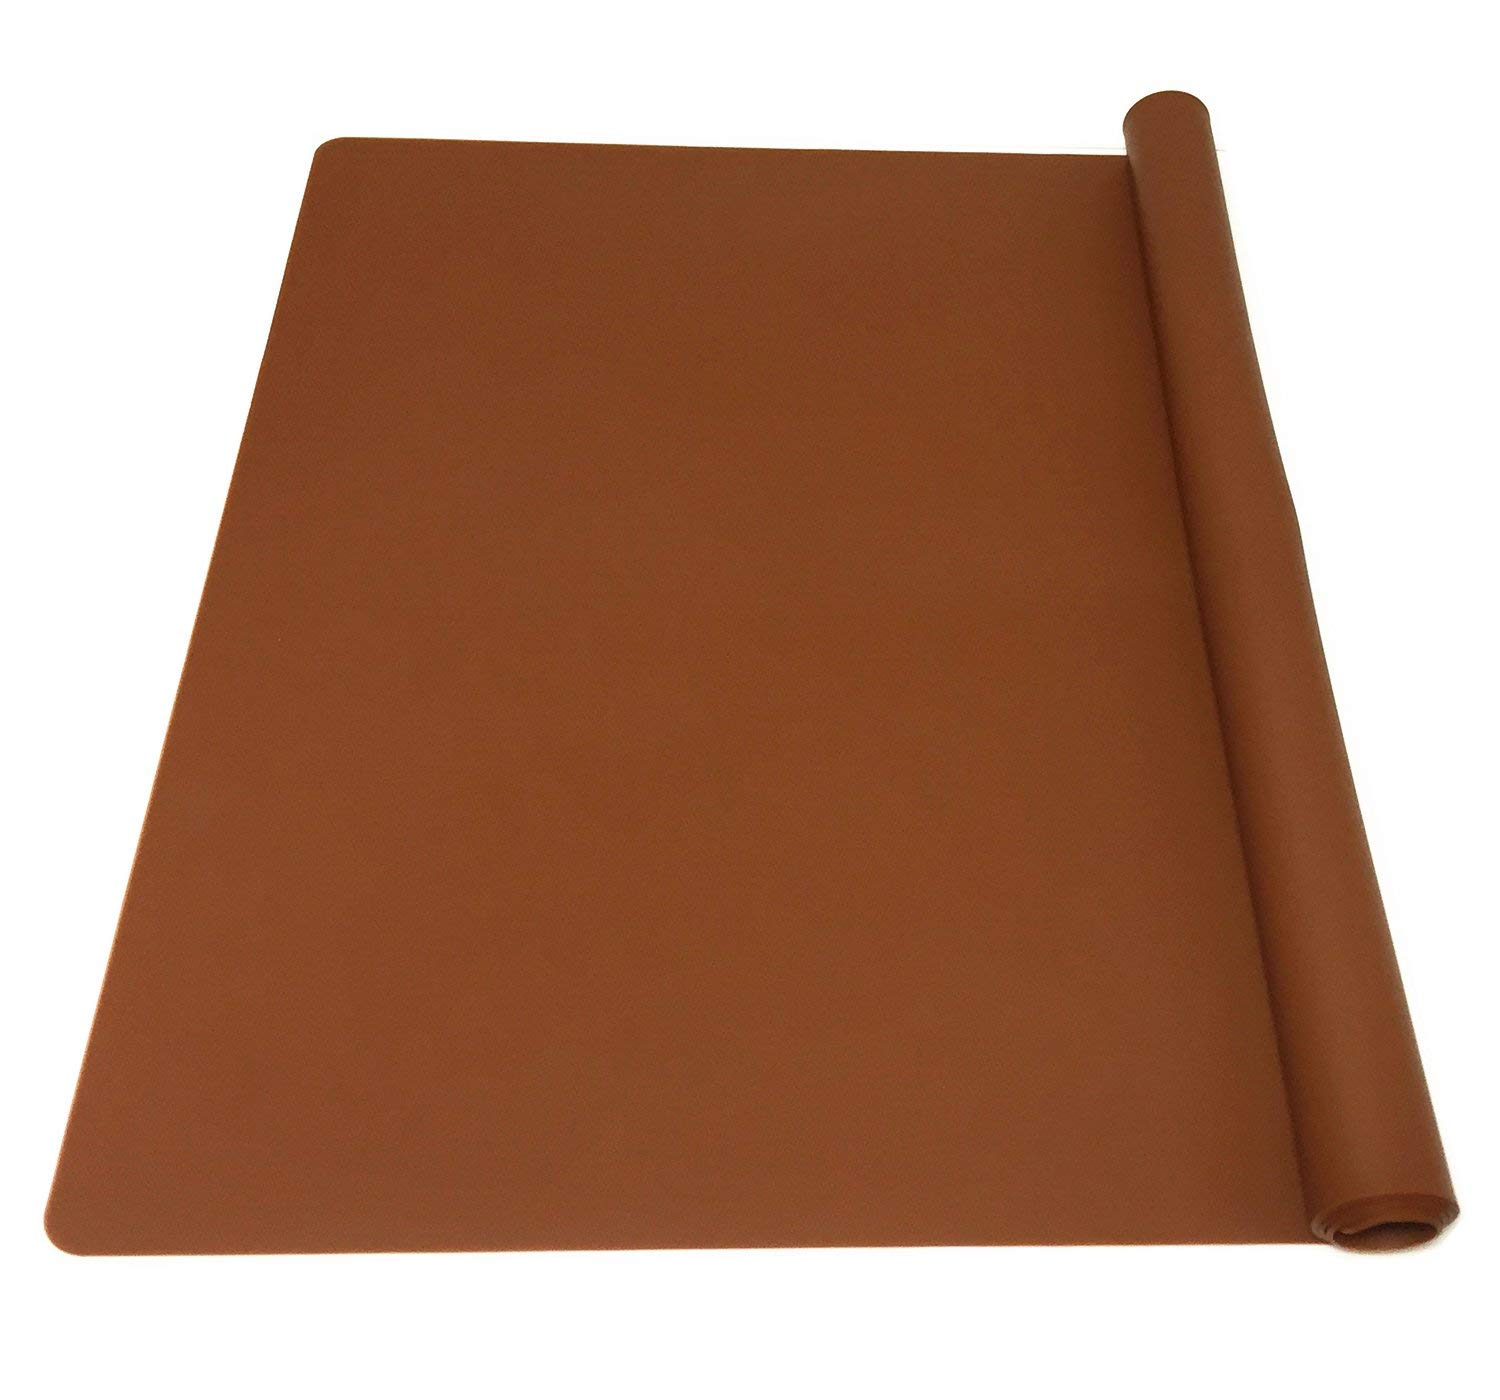 EPHome Extra Large Multipurpose Silicone Nonstick Pastry Mat, Heat Resistant Nonskid Table Mat, Countertop Protector, 23.6''15.75'' (XL, Chocolate)